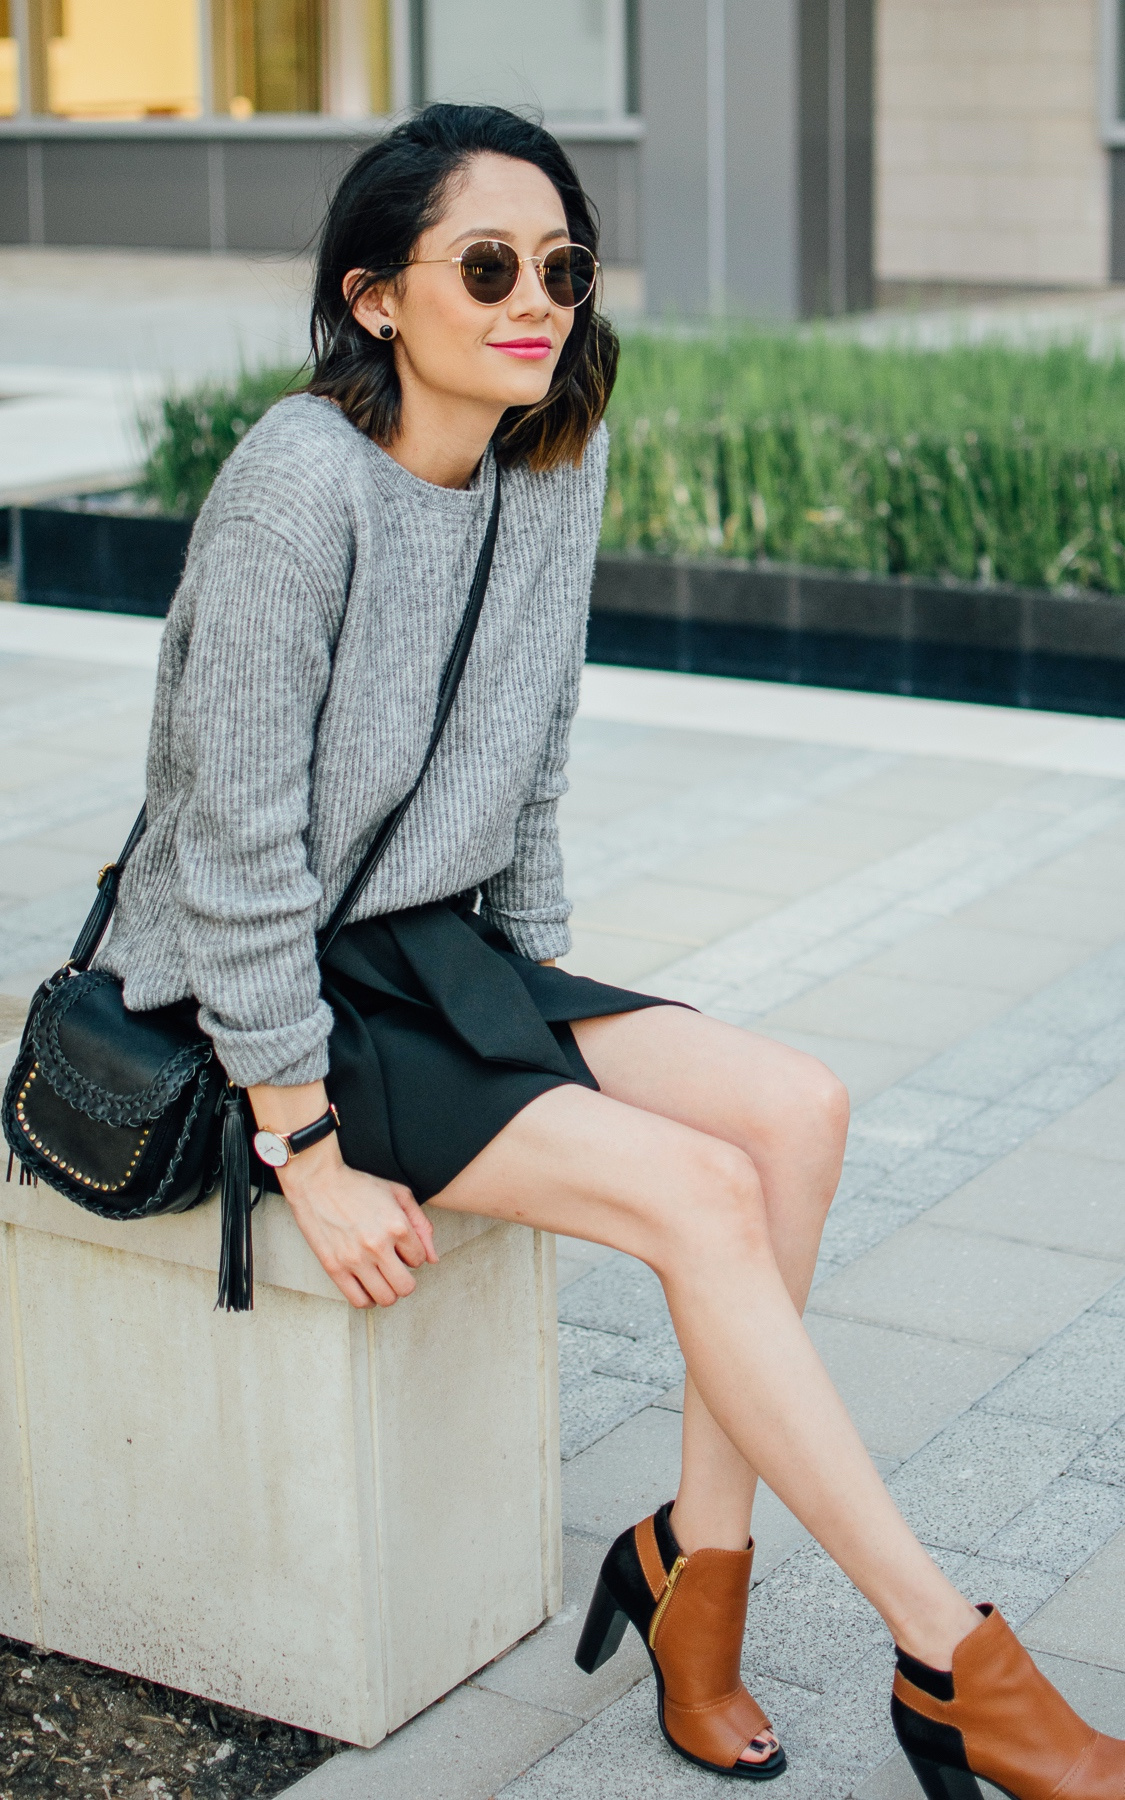 Style blogger Daily Craving styles brown leather booties with a black mini skirt and grey sweater